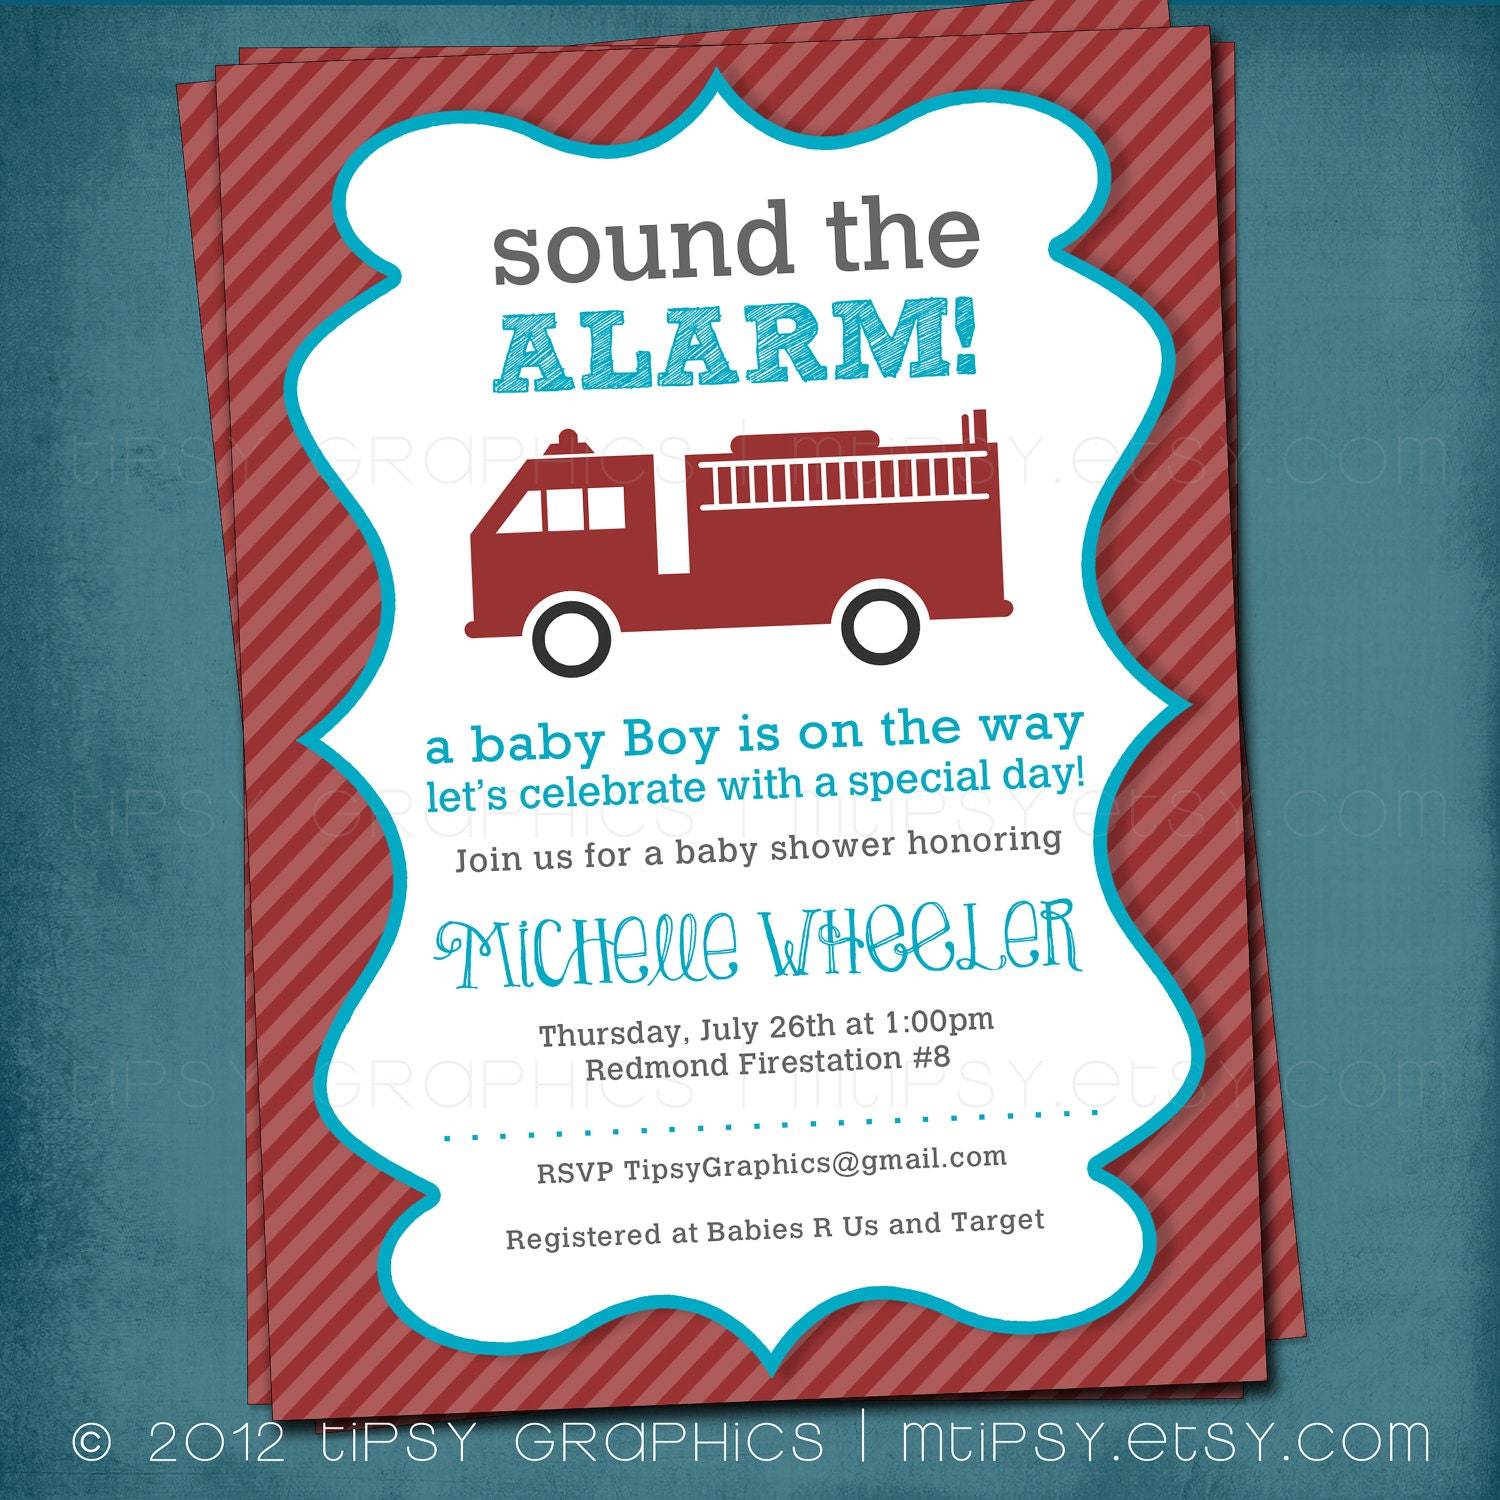 Sound the Alarm. Little Red Firetruck Baby Shower or Party